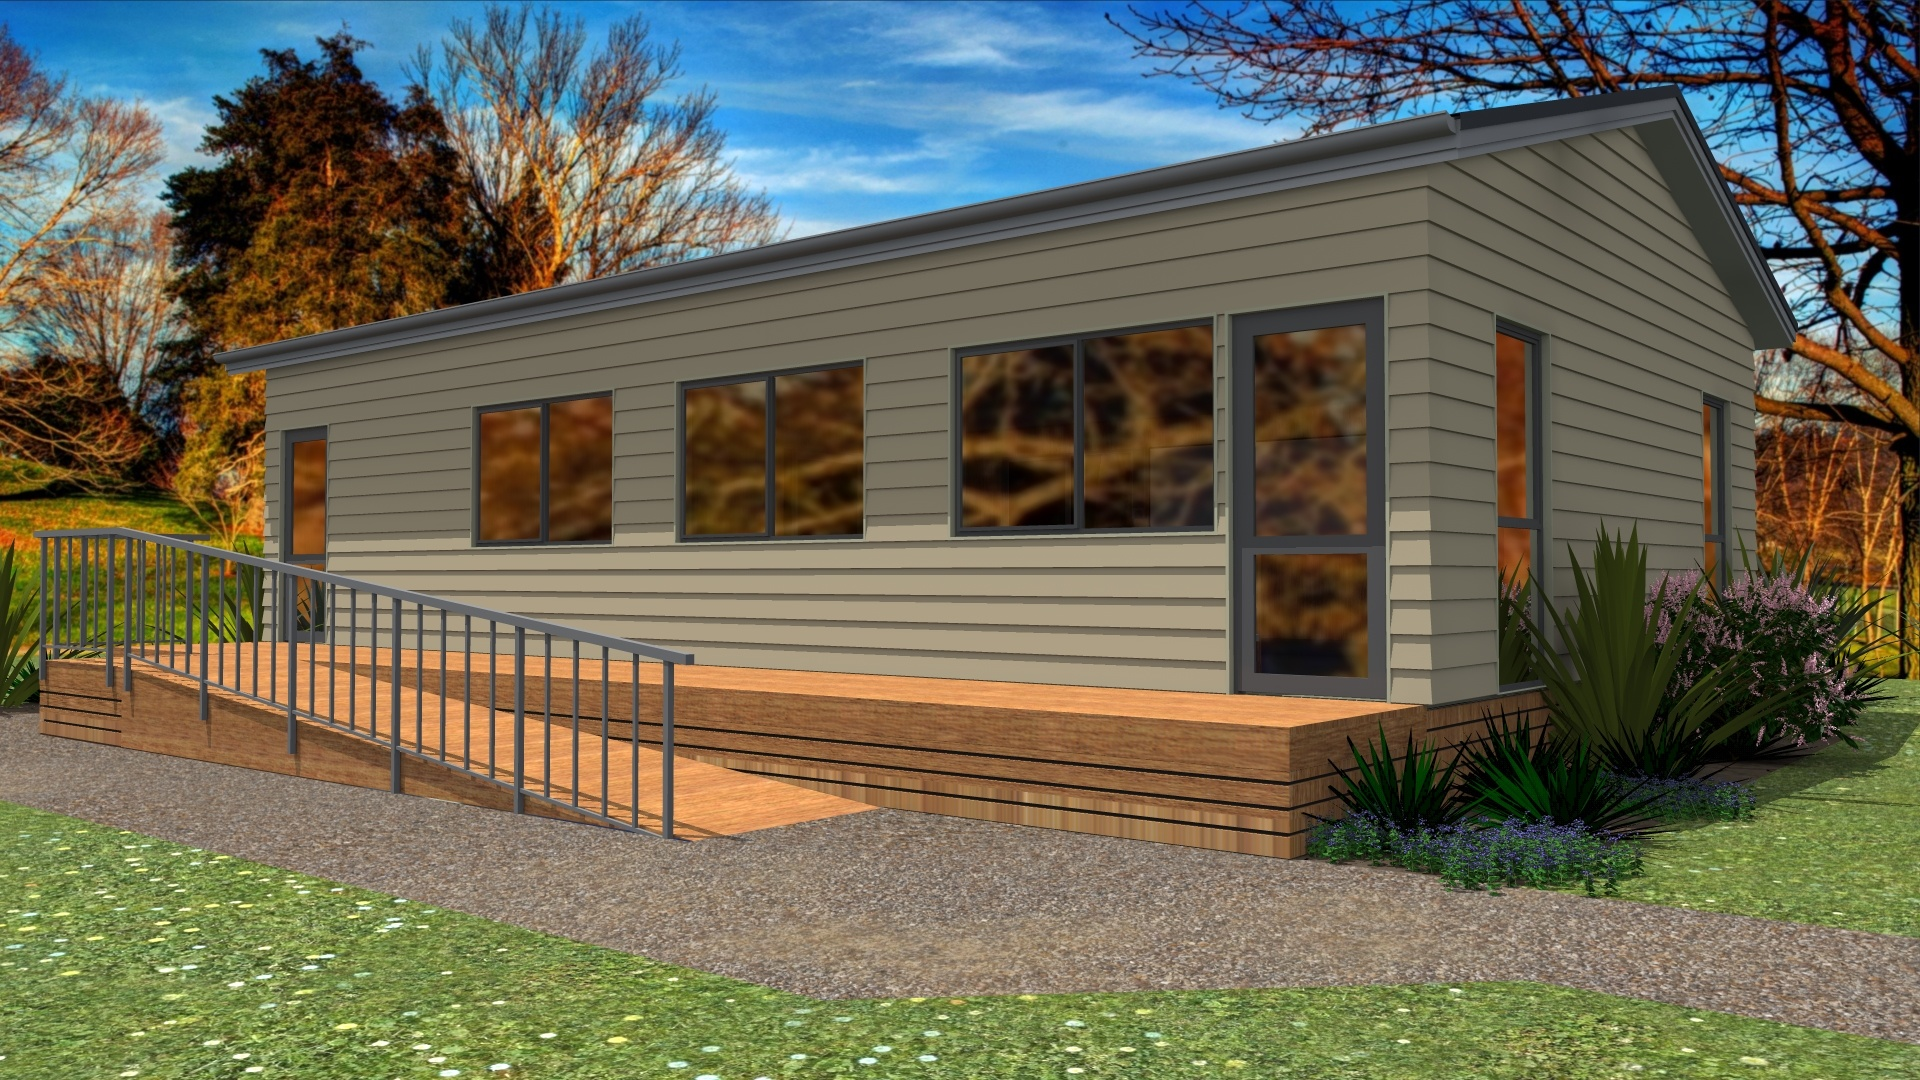 Commercial prefabricated classroom